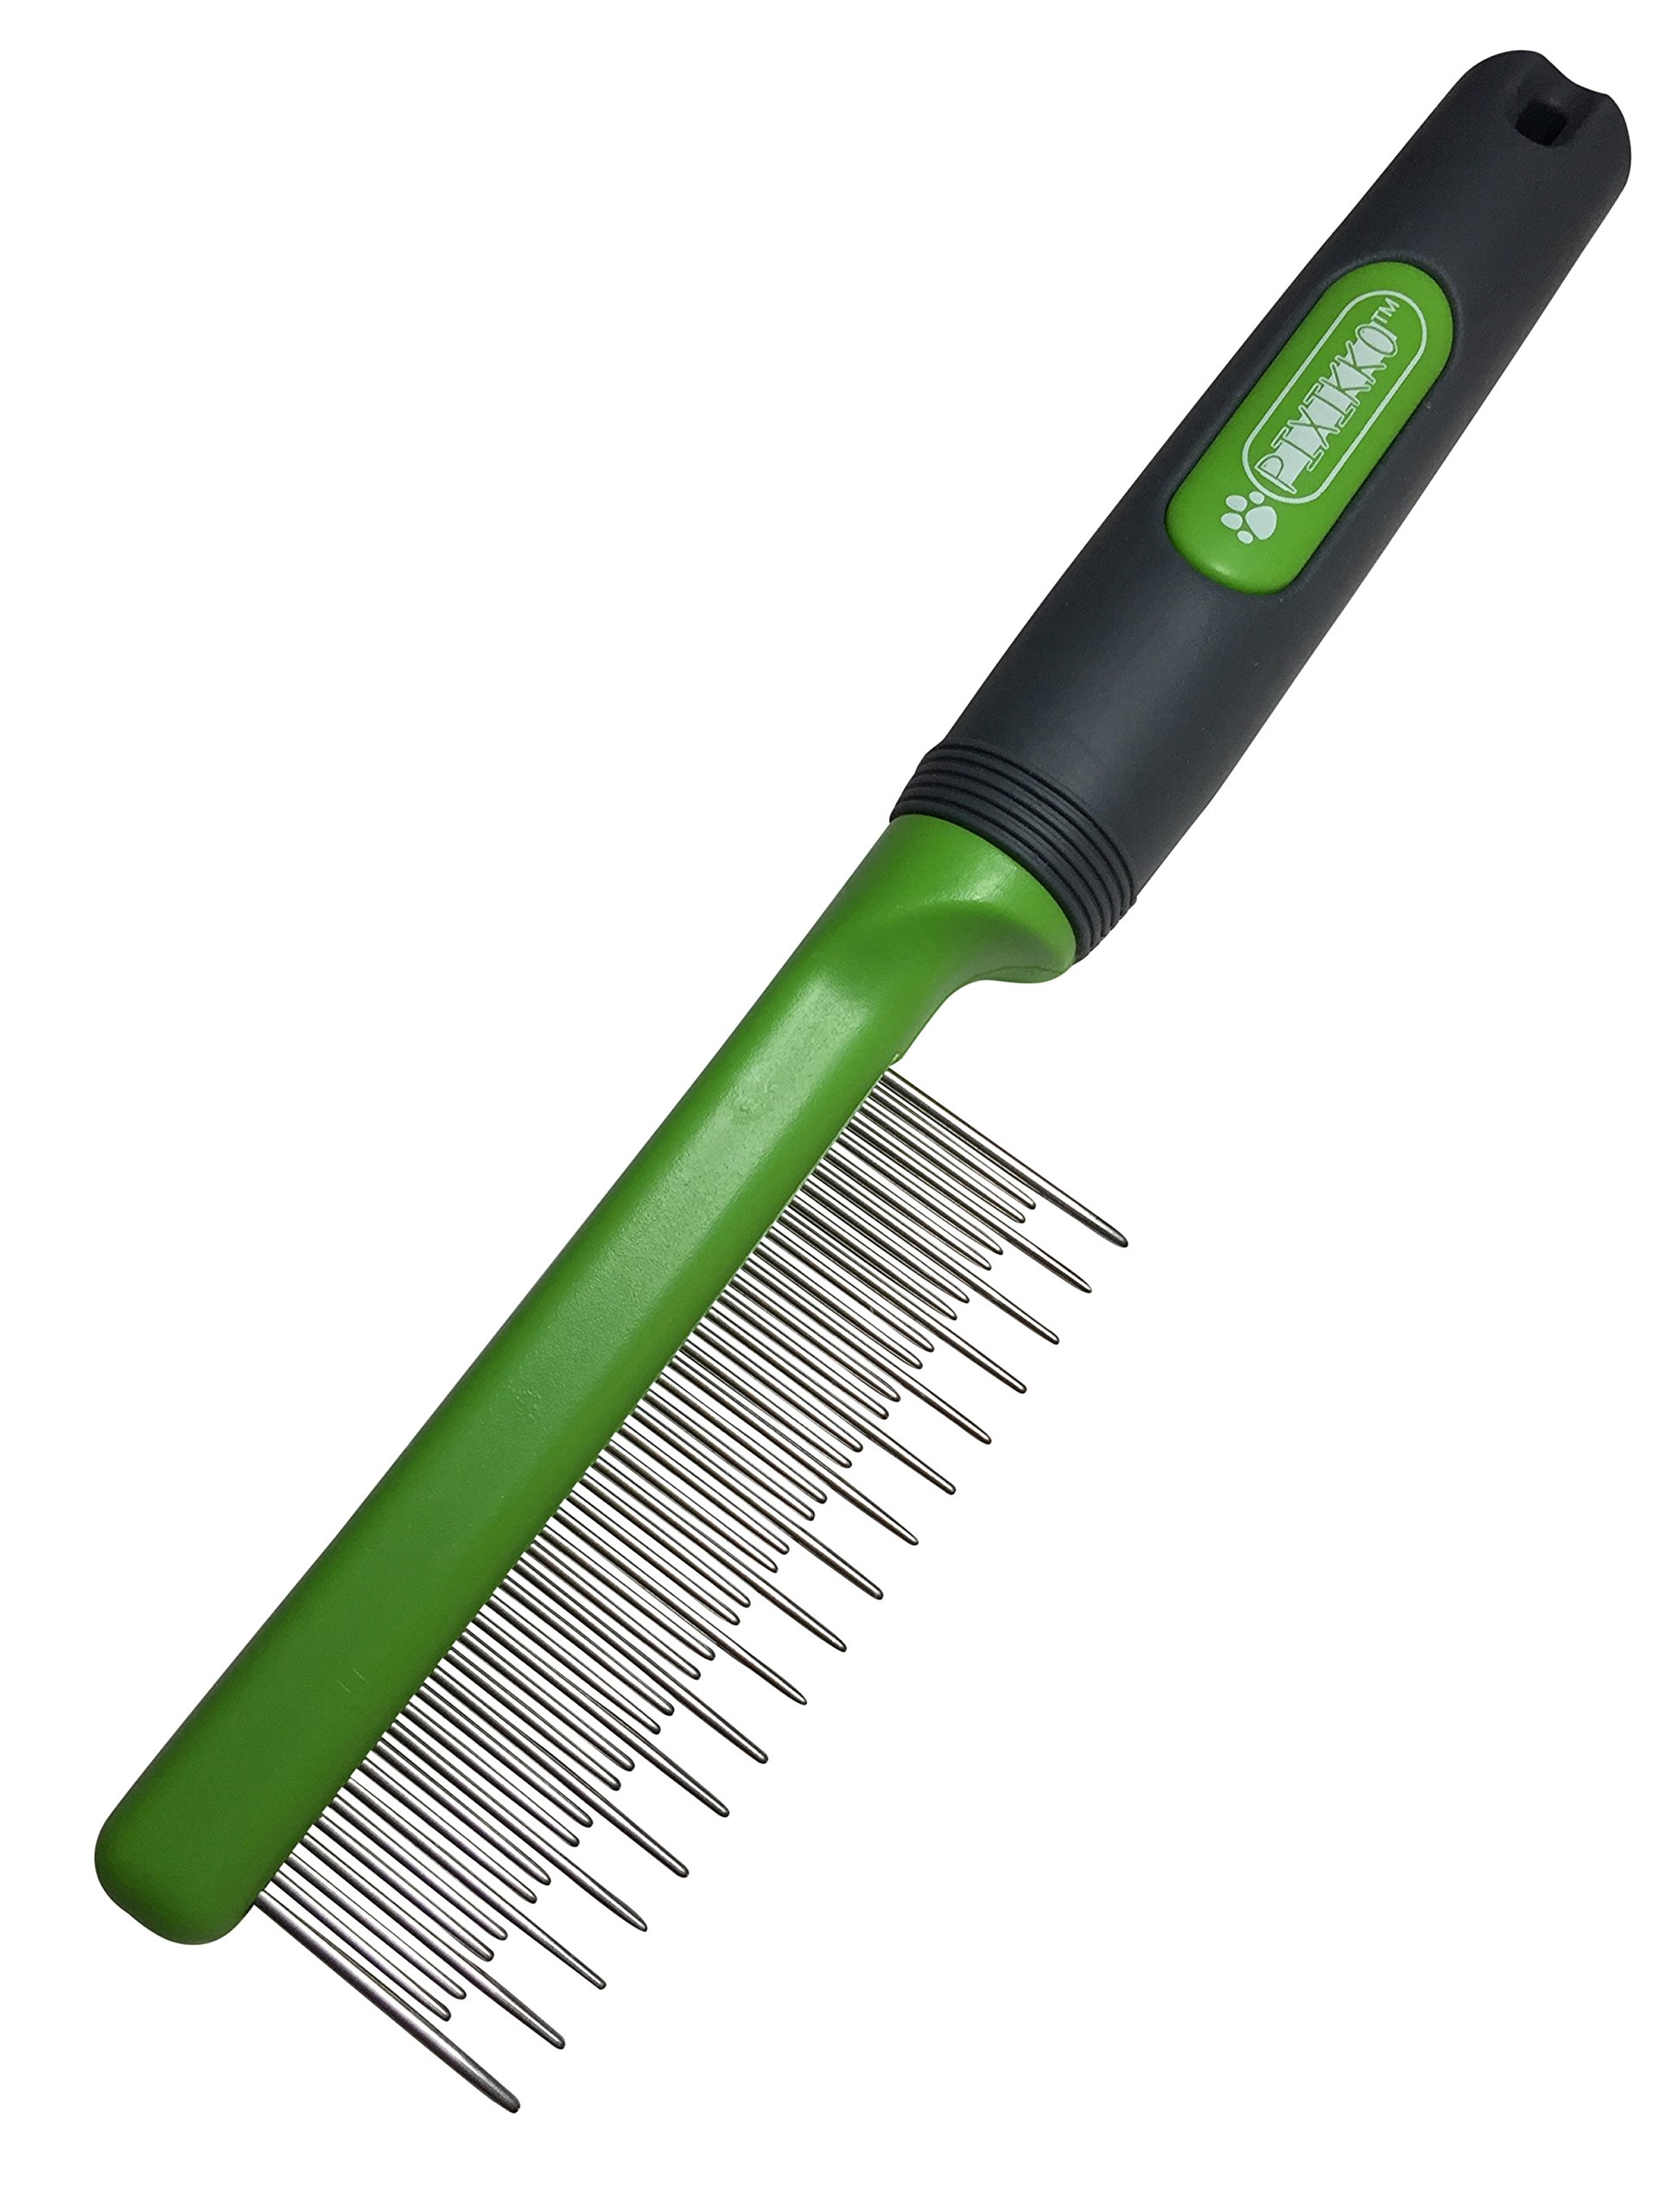 Pixikko Stainless Steel Cat Shedding Comb with Non-slip Grip Handle